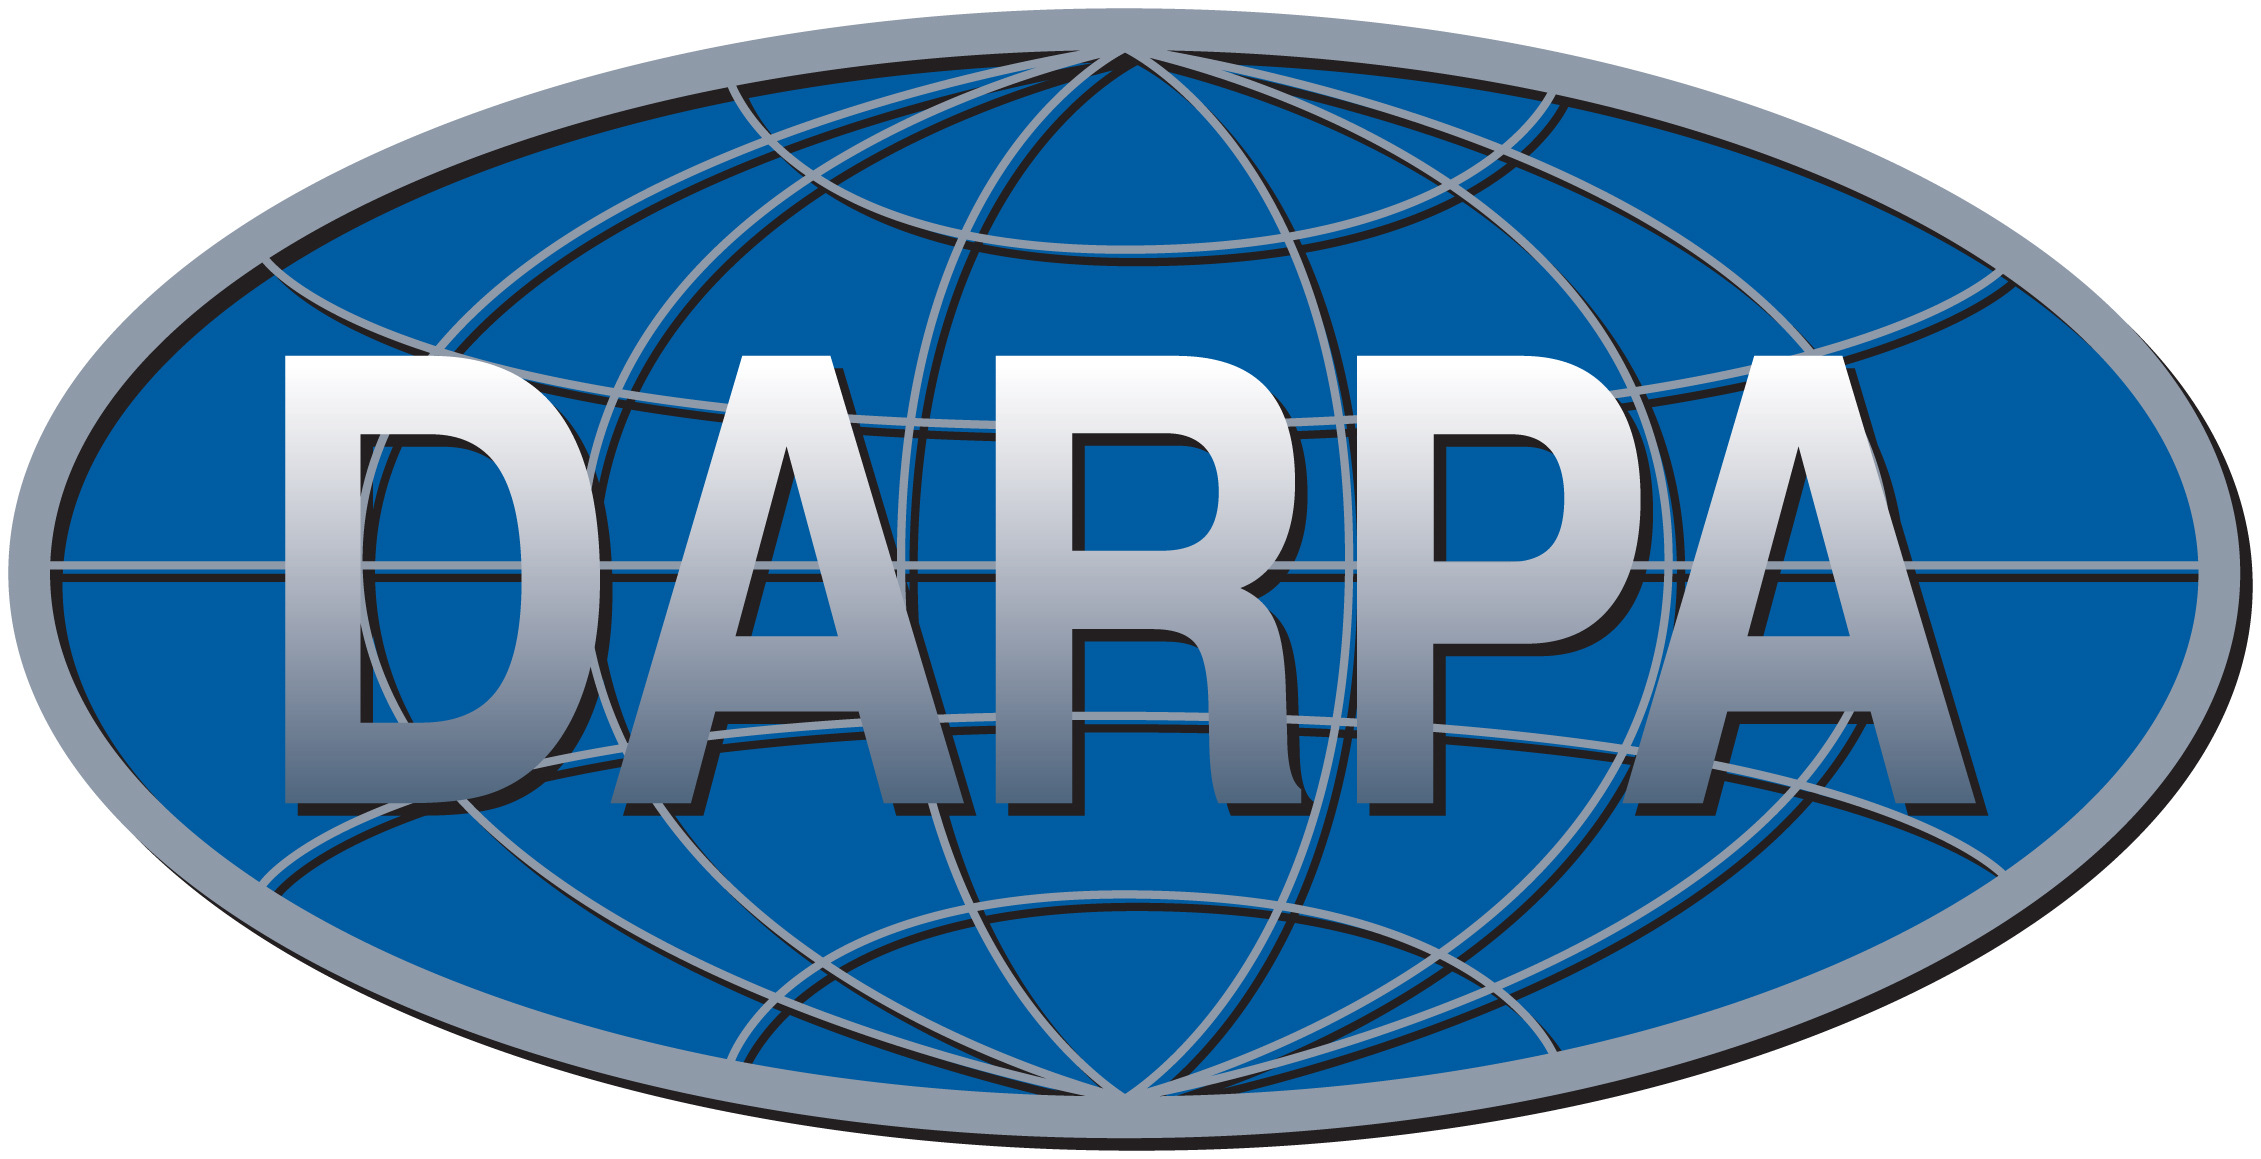 https://i0.wp.com/upload.wikimedia.org/wikipedia/commons/6/6e/DARPA_Logo.jpg